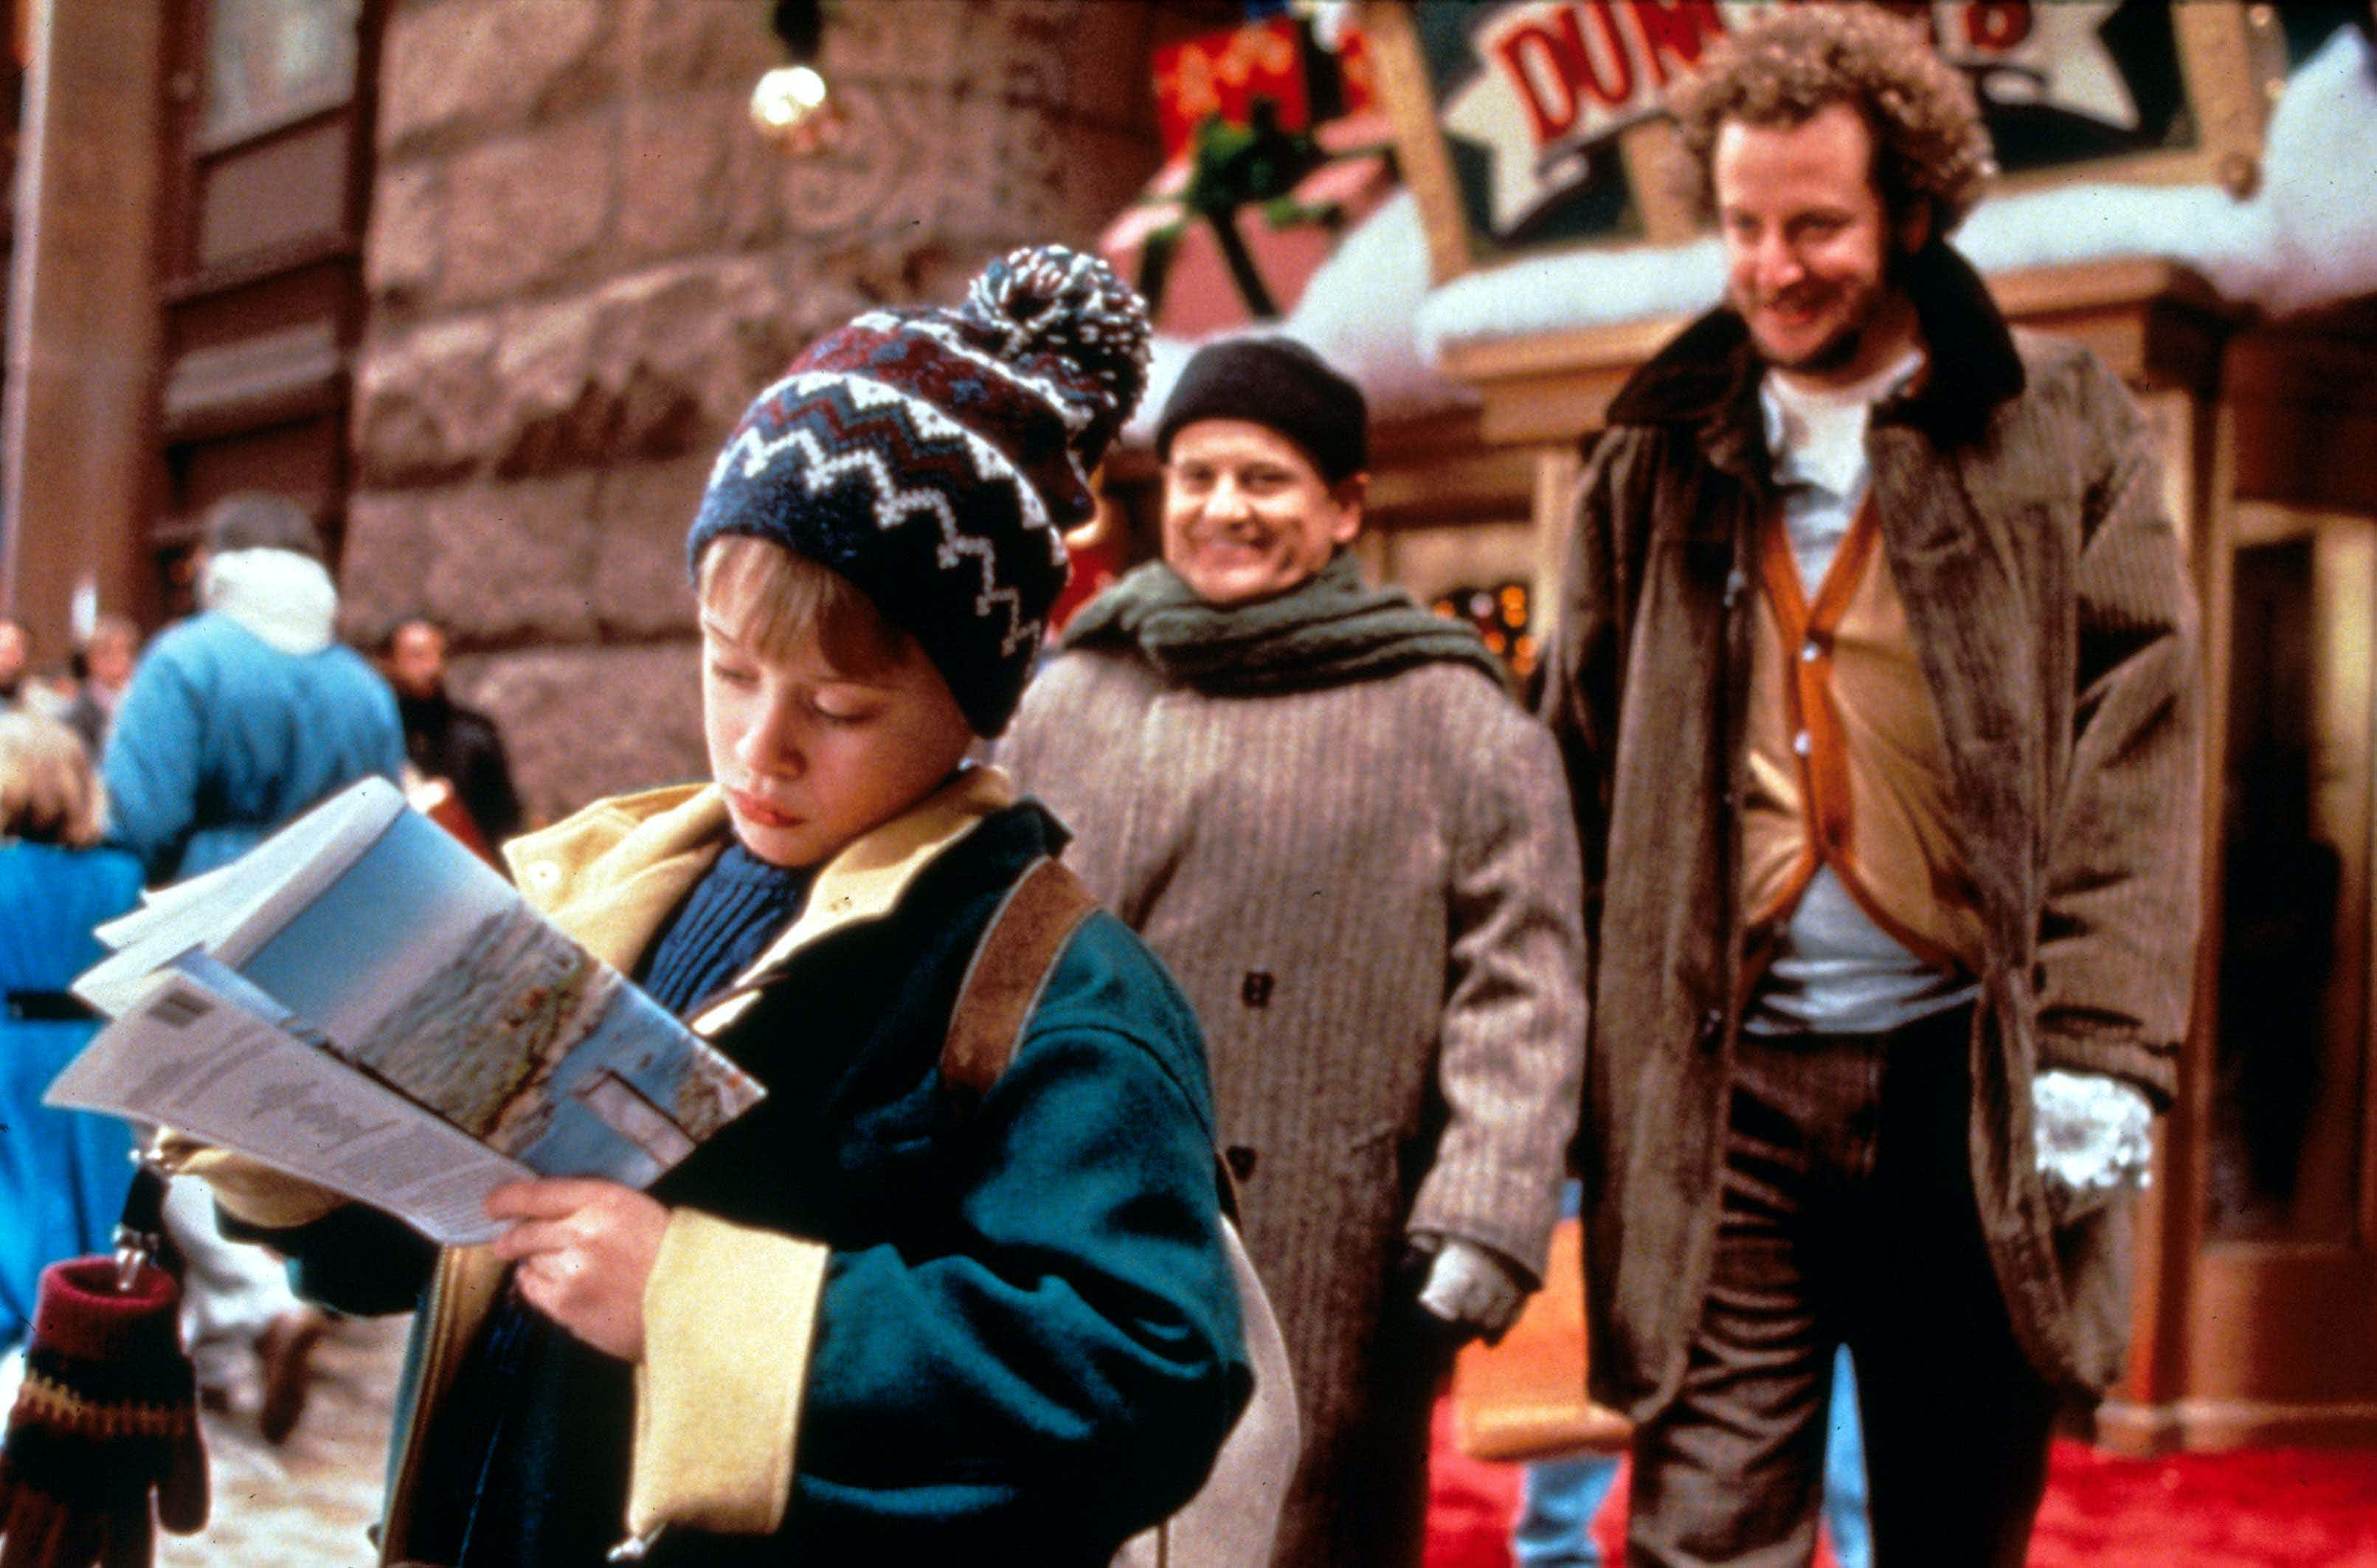 6 classic Christmas movies to watch on your holiday travels